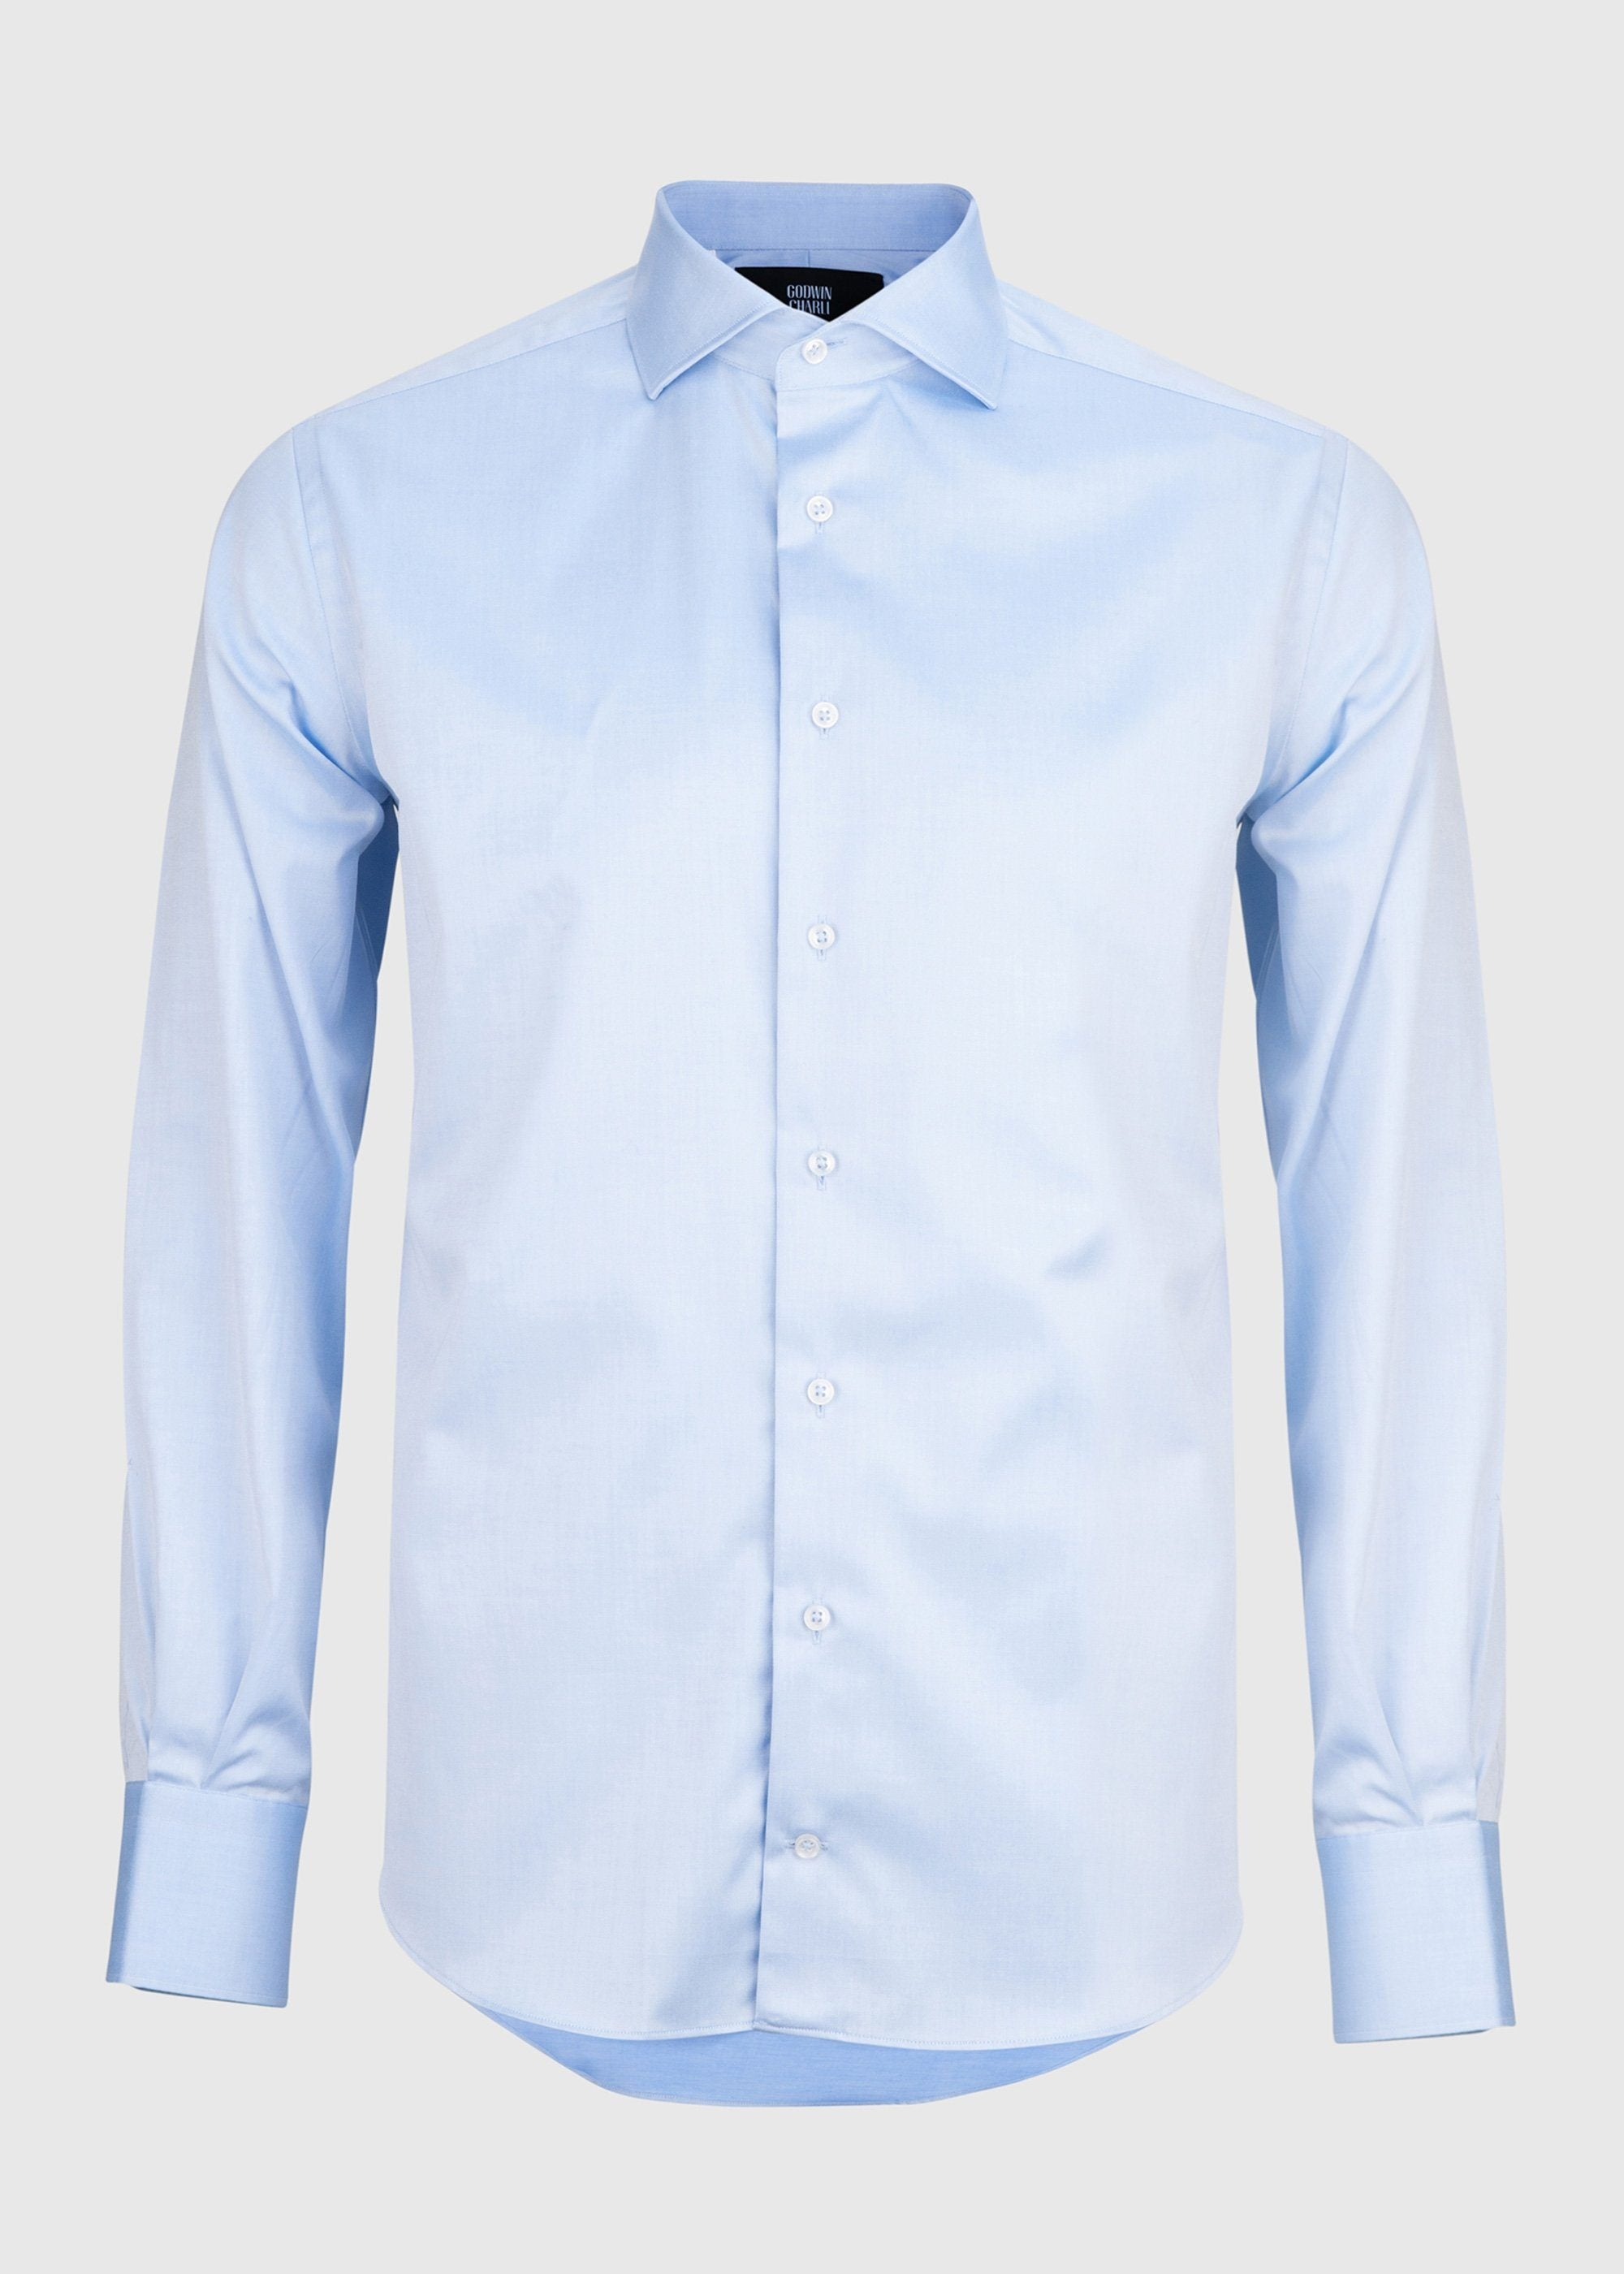 Pilot (BC) Shirt - Light Blue Twill